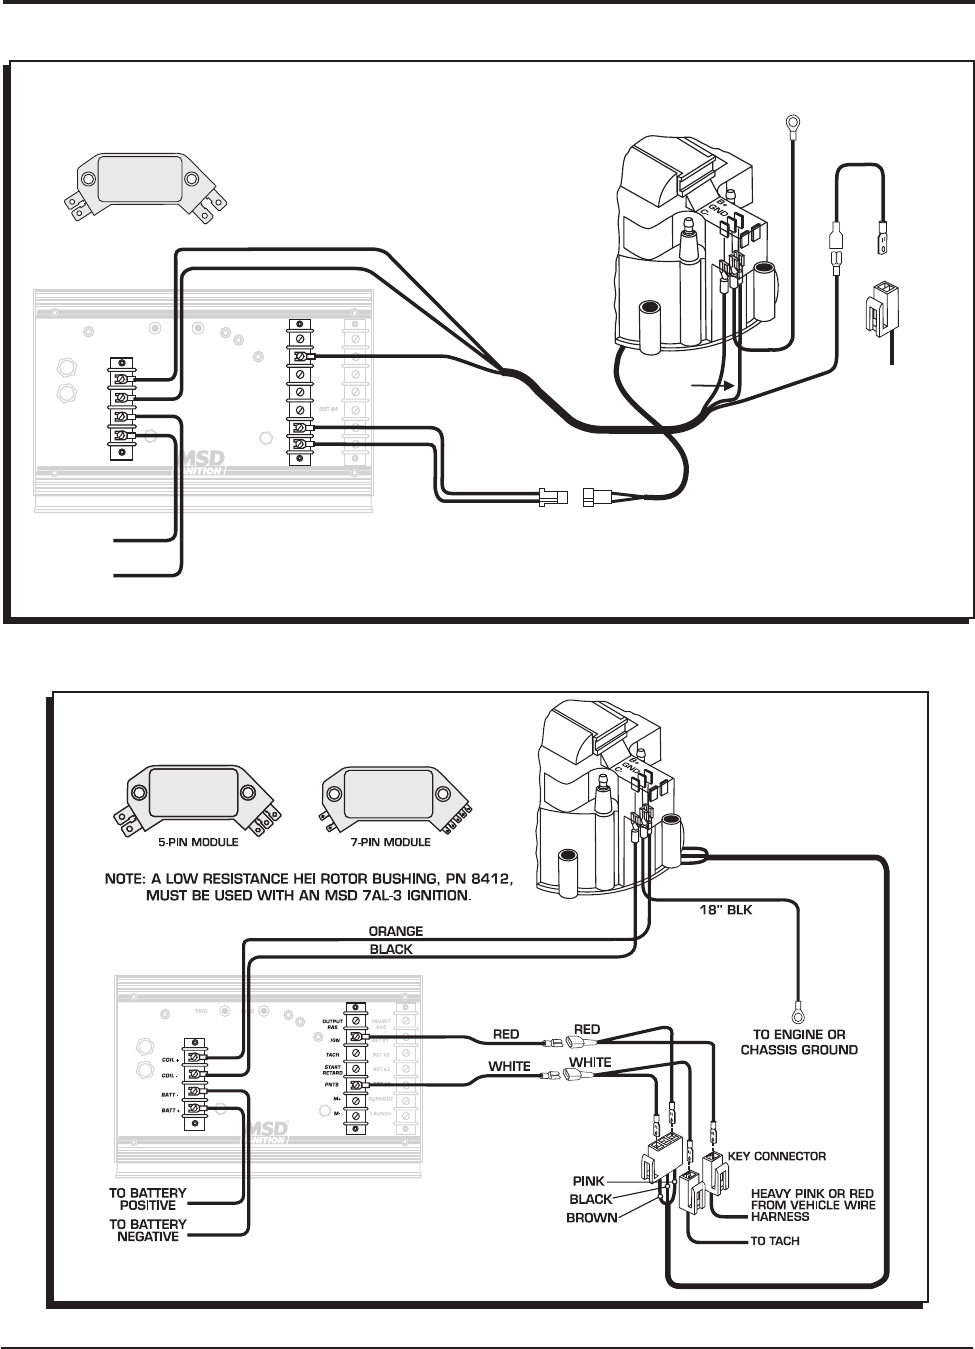 hight resolution of 7320 msd ignition wiring diagram wiring library ford ignition wiring diagram 7320 msd ignition wiring diagram